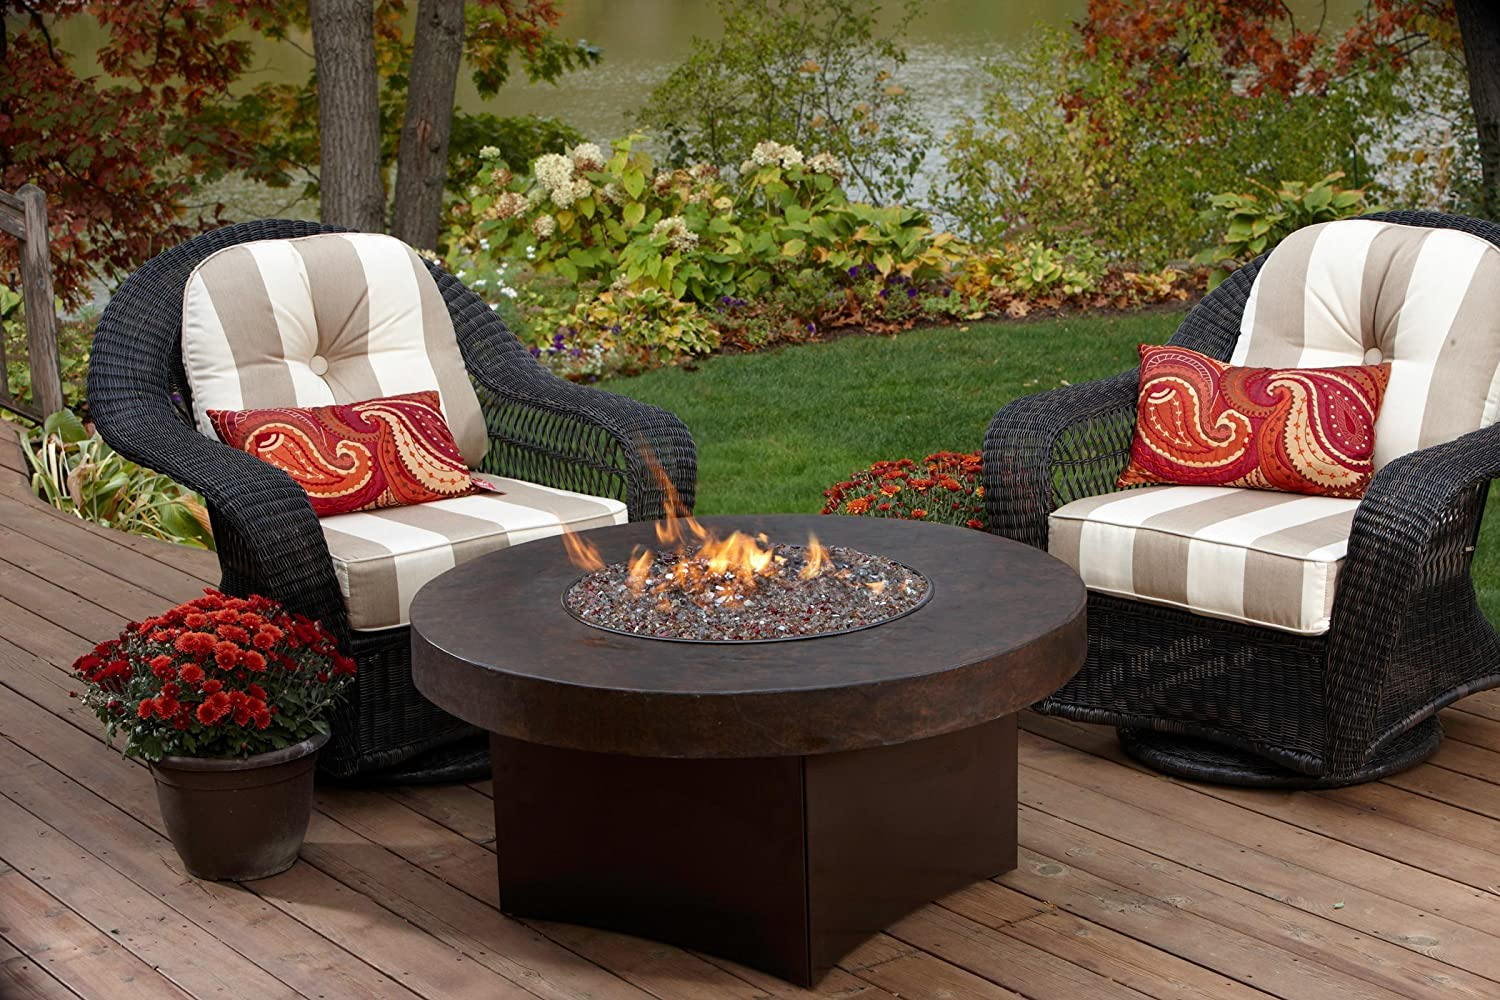 Oriflamme Gas Fire Pit Table Savanna Stone